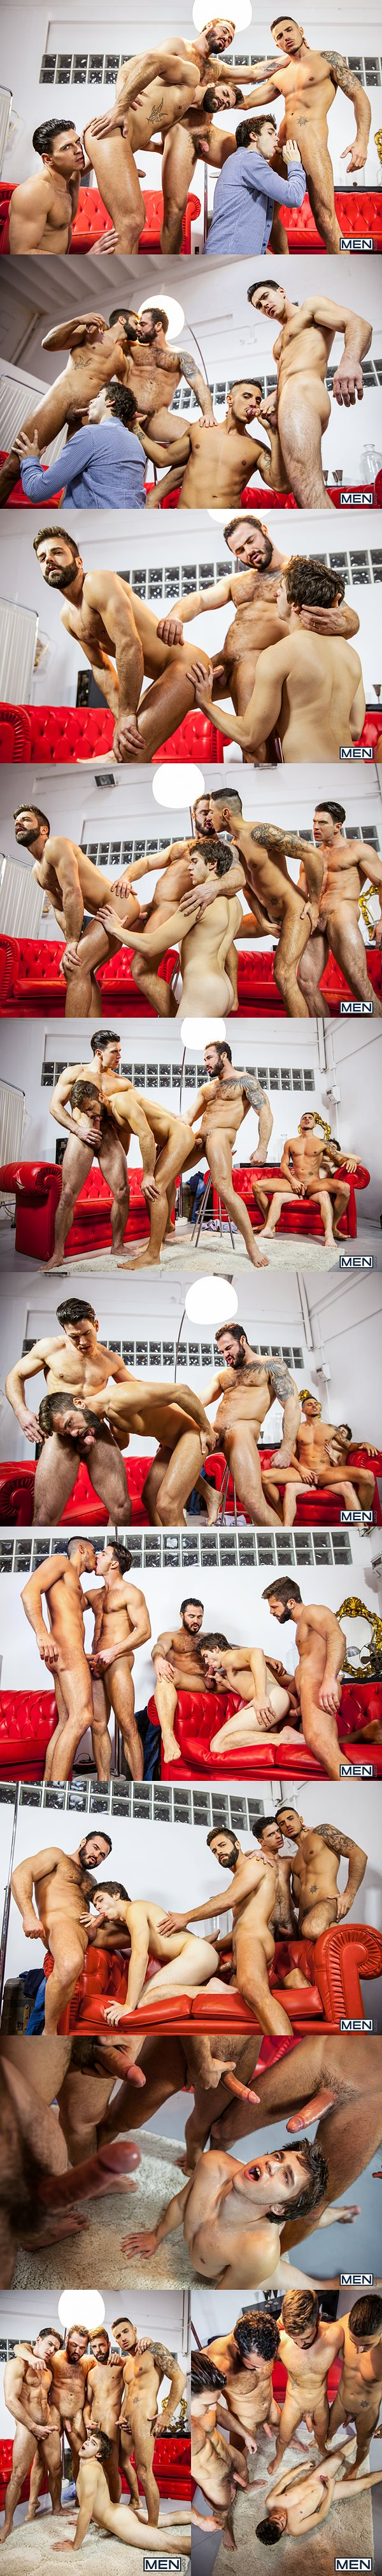 Paddy O'Brian and Jessy Ares fuck Will Braun, Hector De Silva and Klein Kerr in Lost Boys Part 3 at Jizzorgy 02